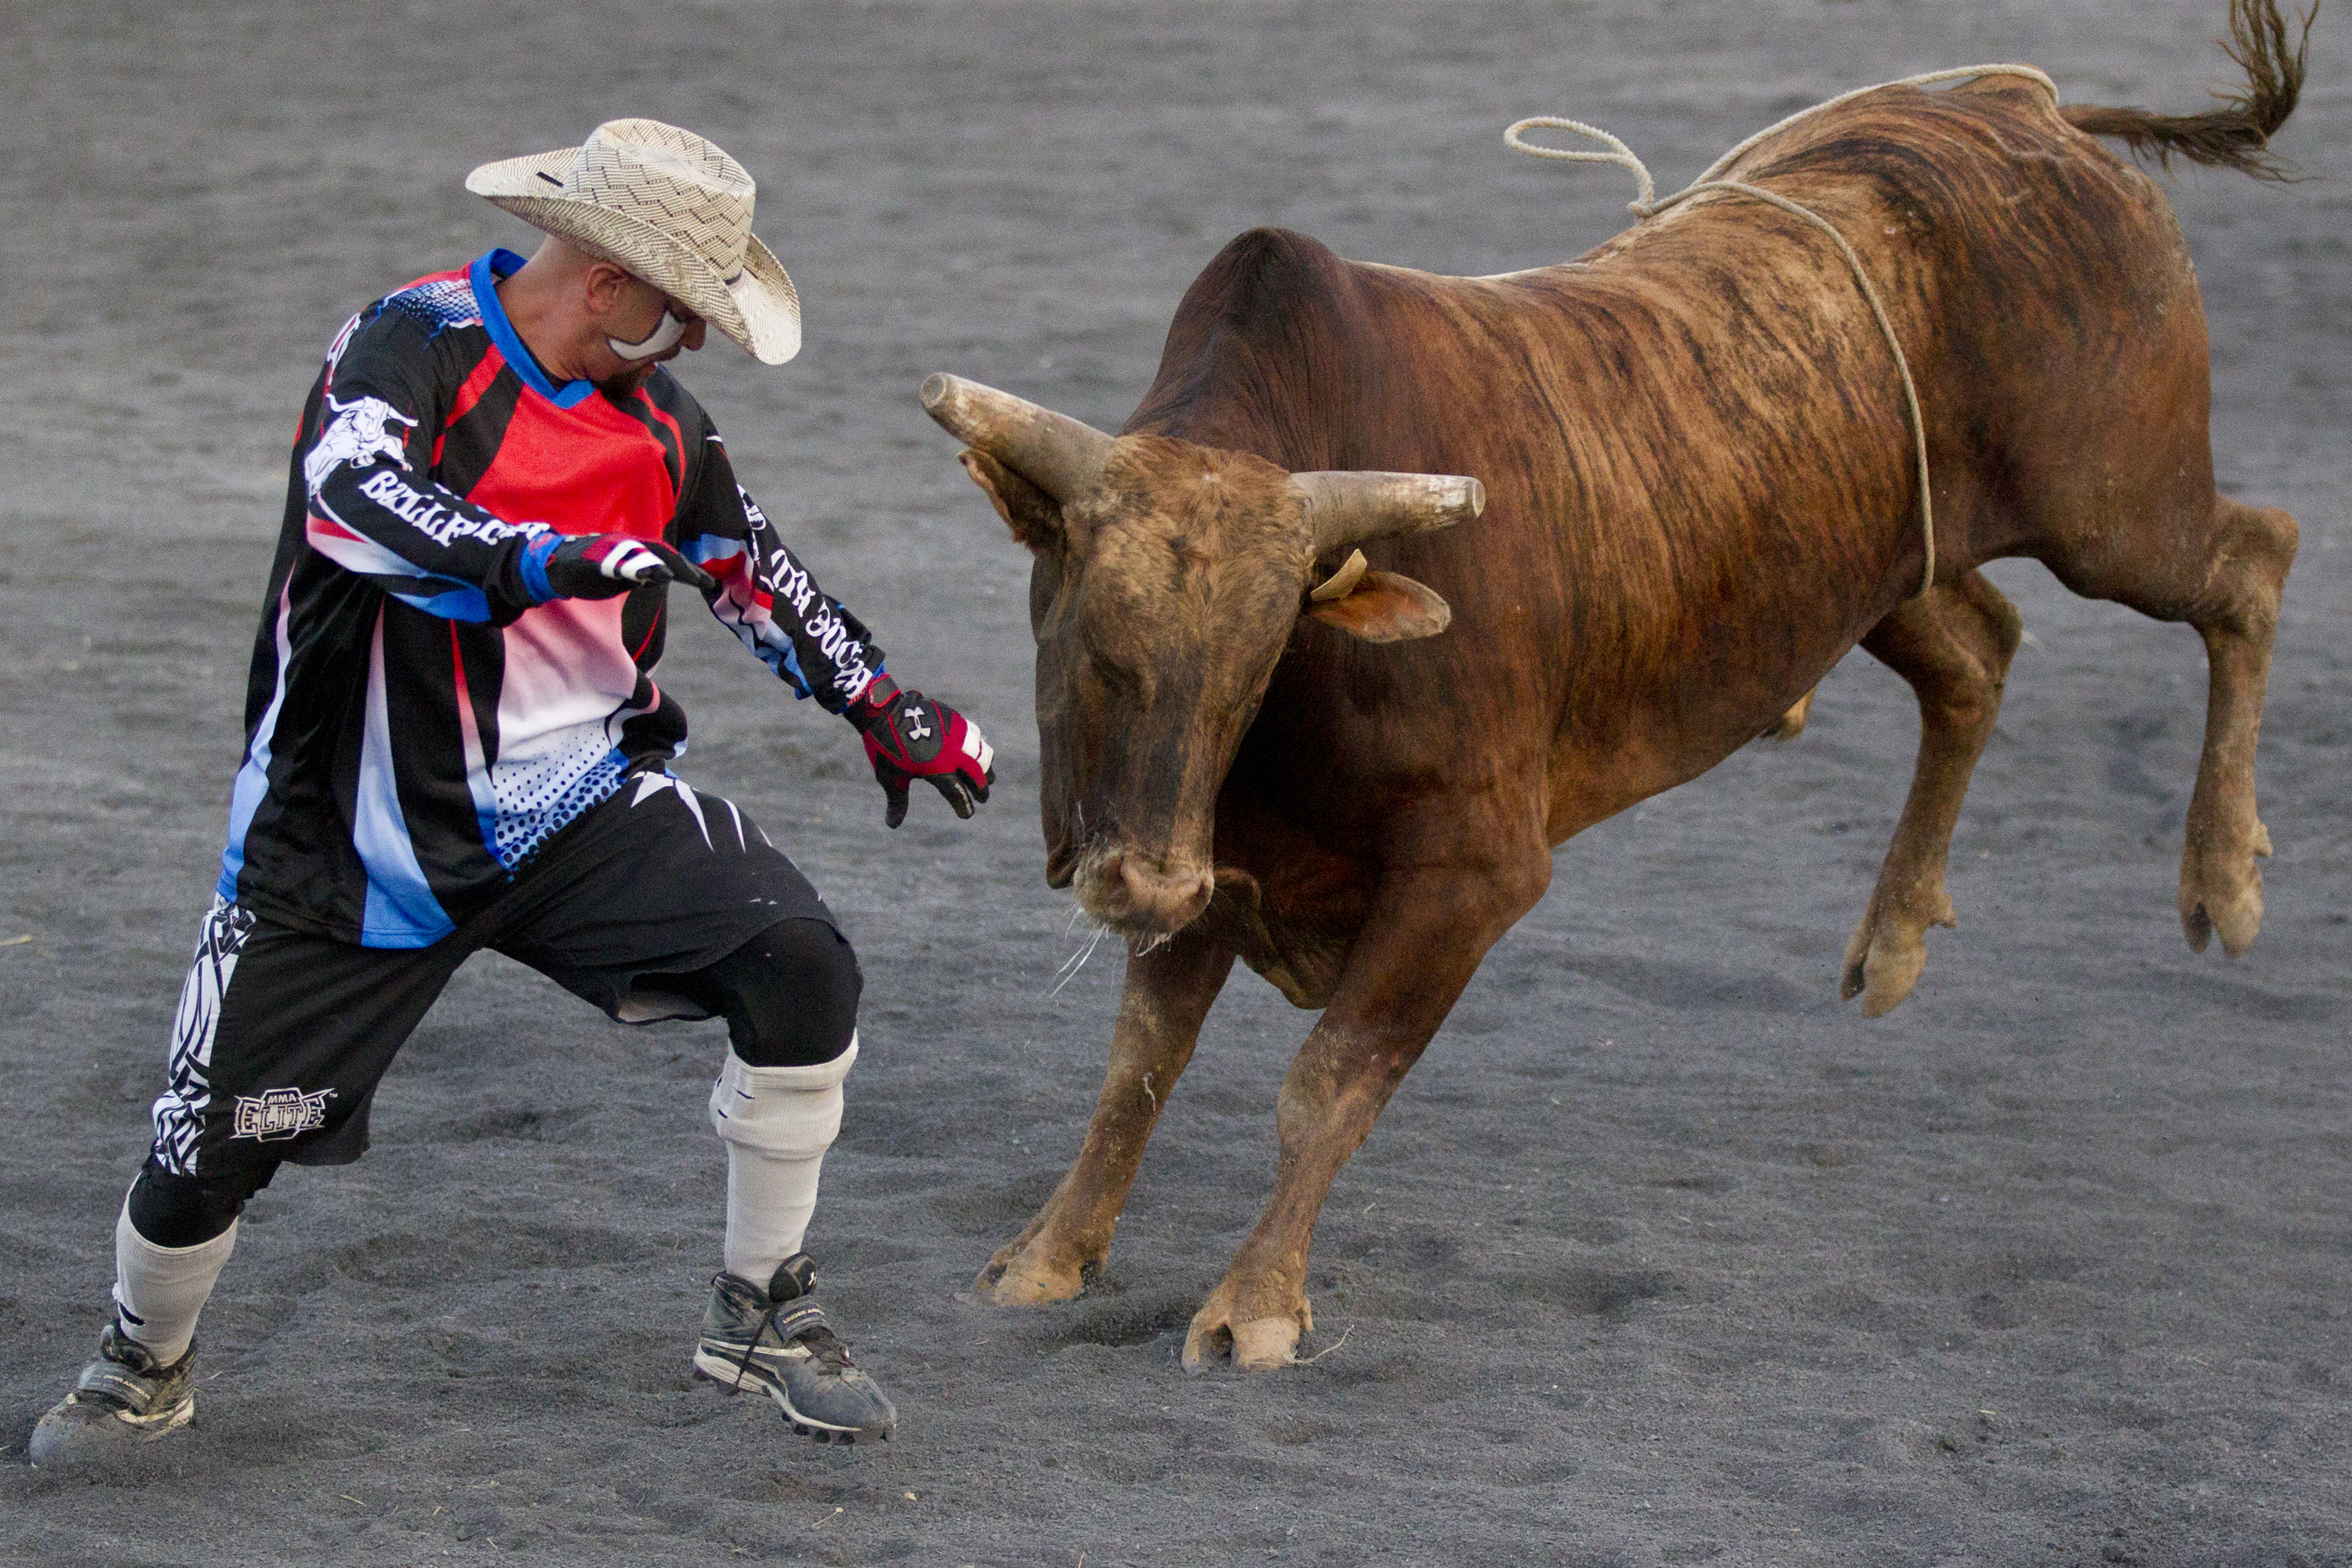 The Life Of A Rodeo Cowboy